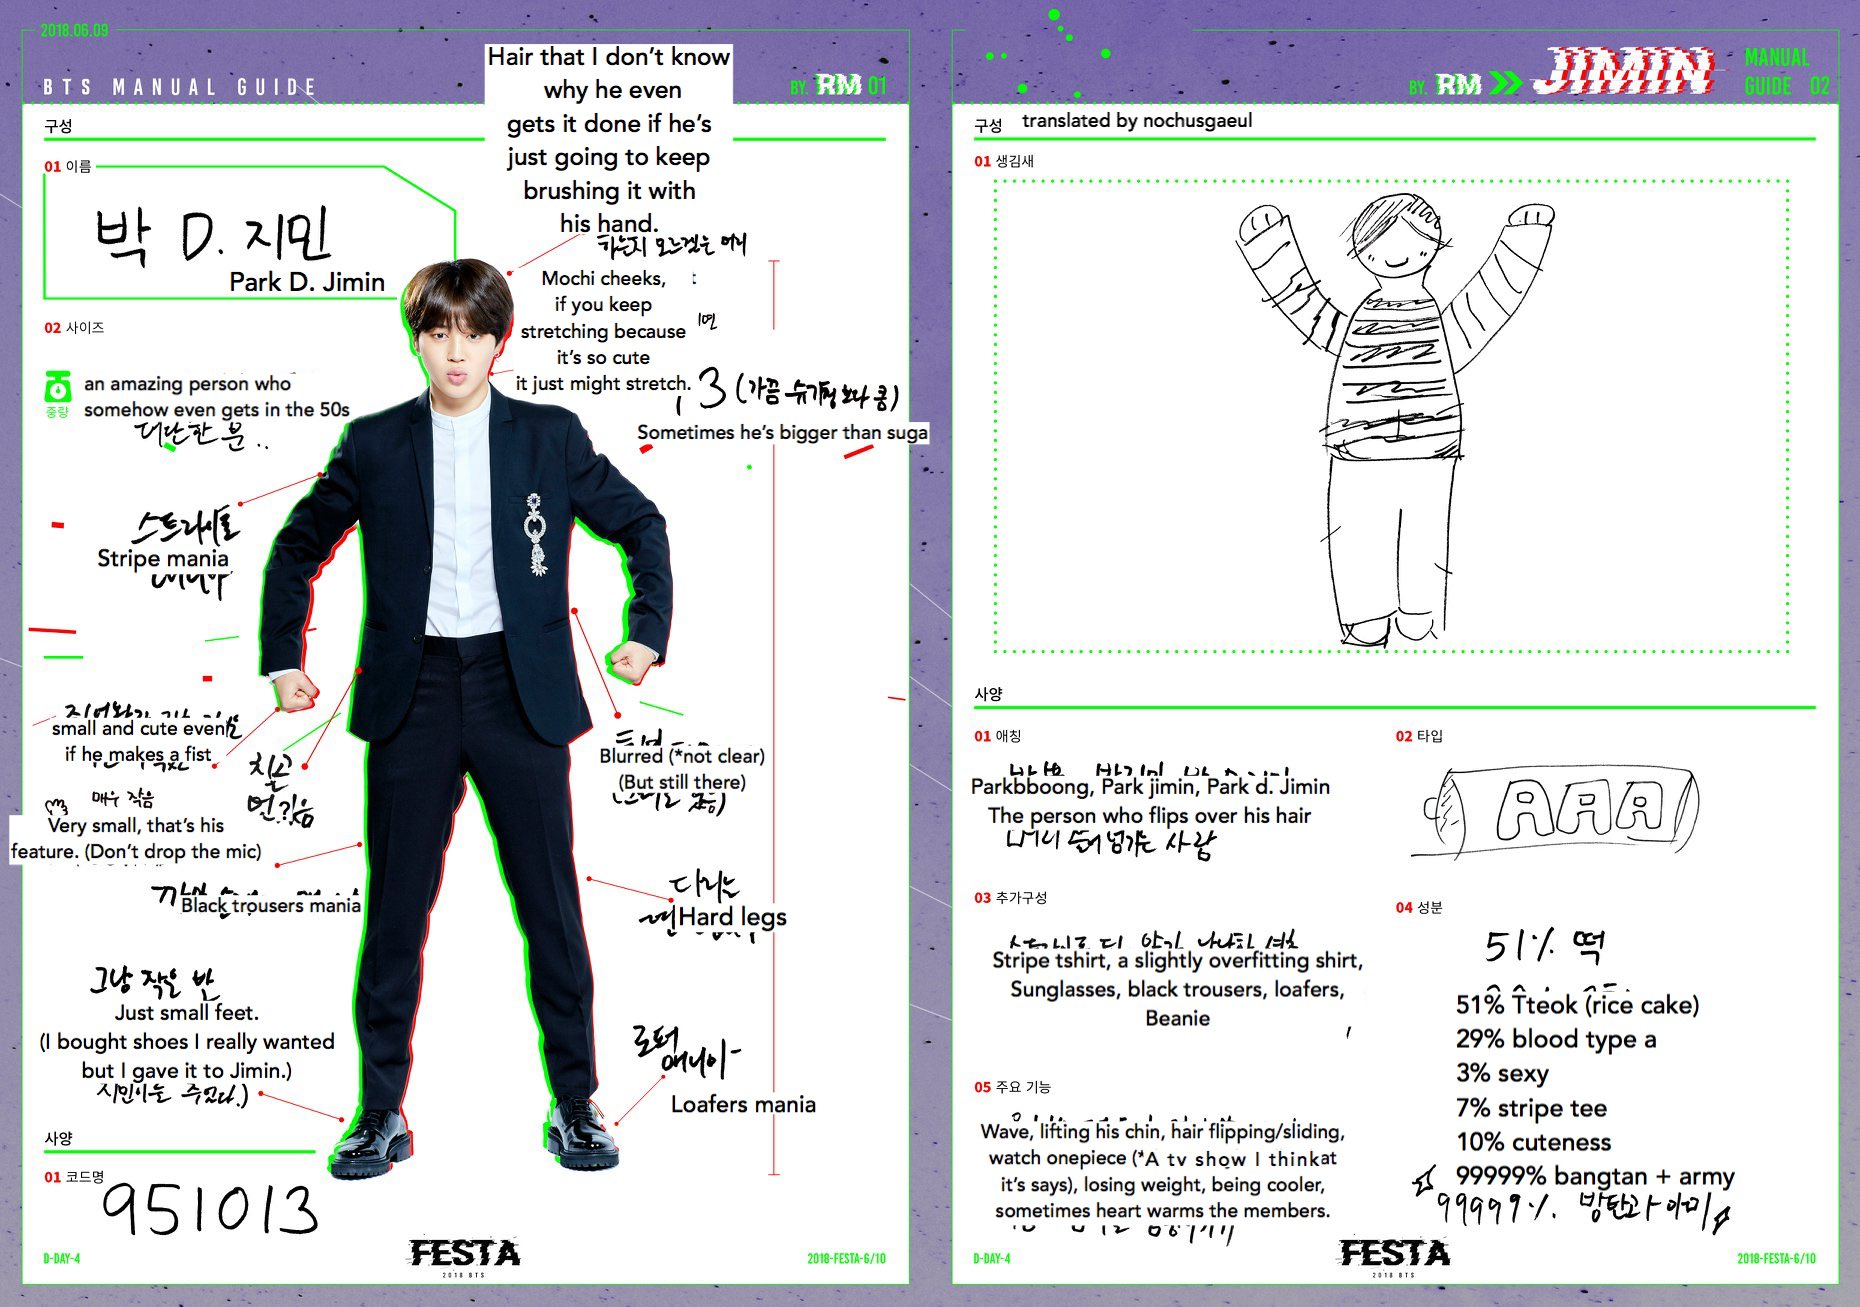 Picture] 2018 BTS FESTA : BTS MANUAL GUIDE [180809] |